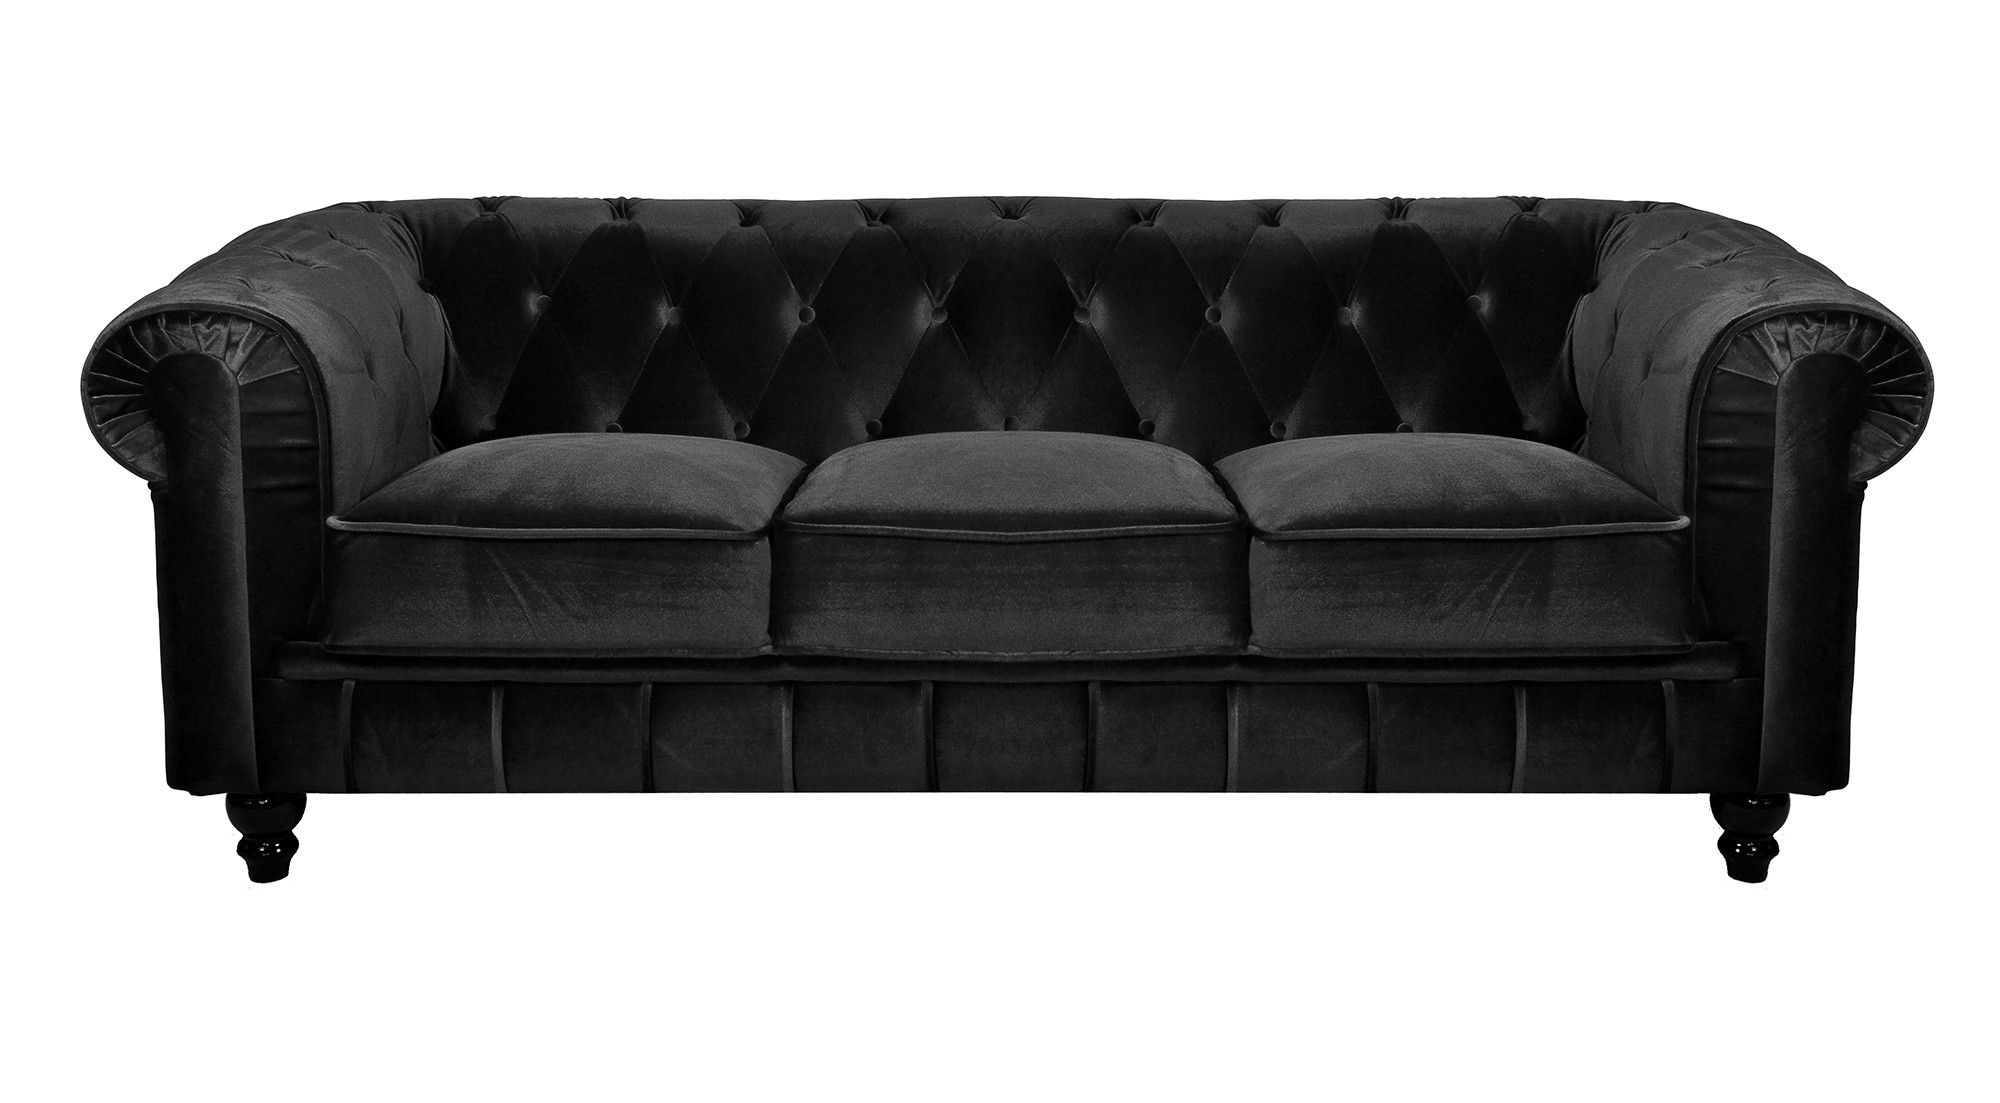 Canape chesterfield convertible meilleures images d - Canape chesterfield convertible ...